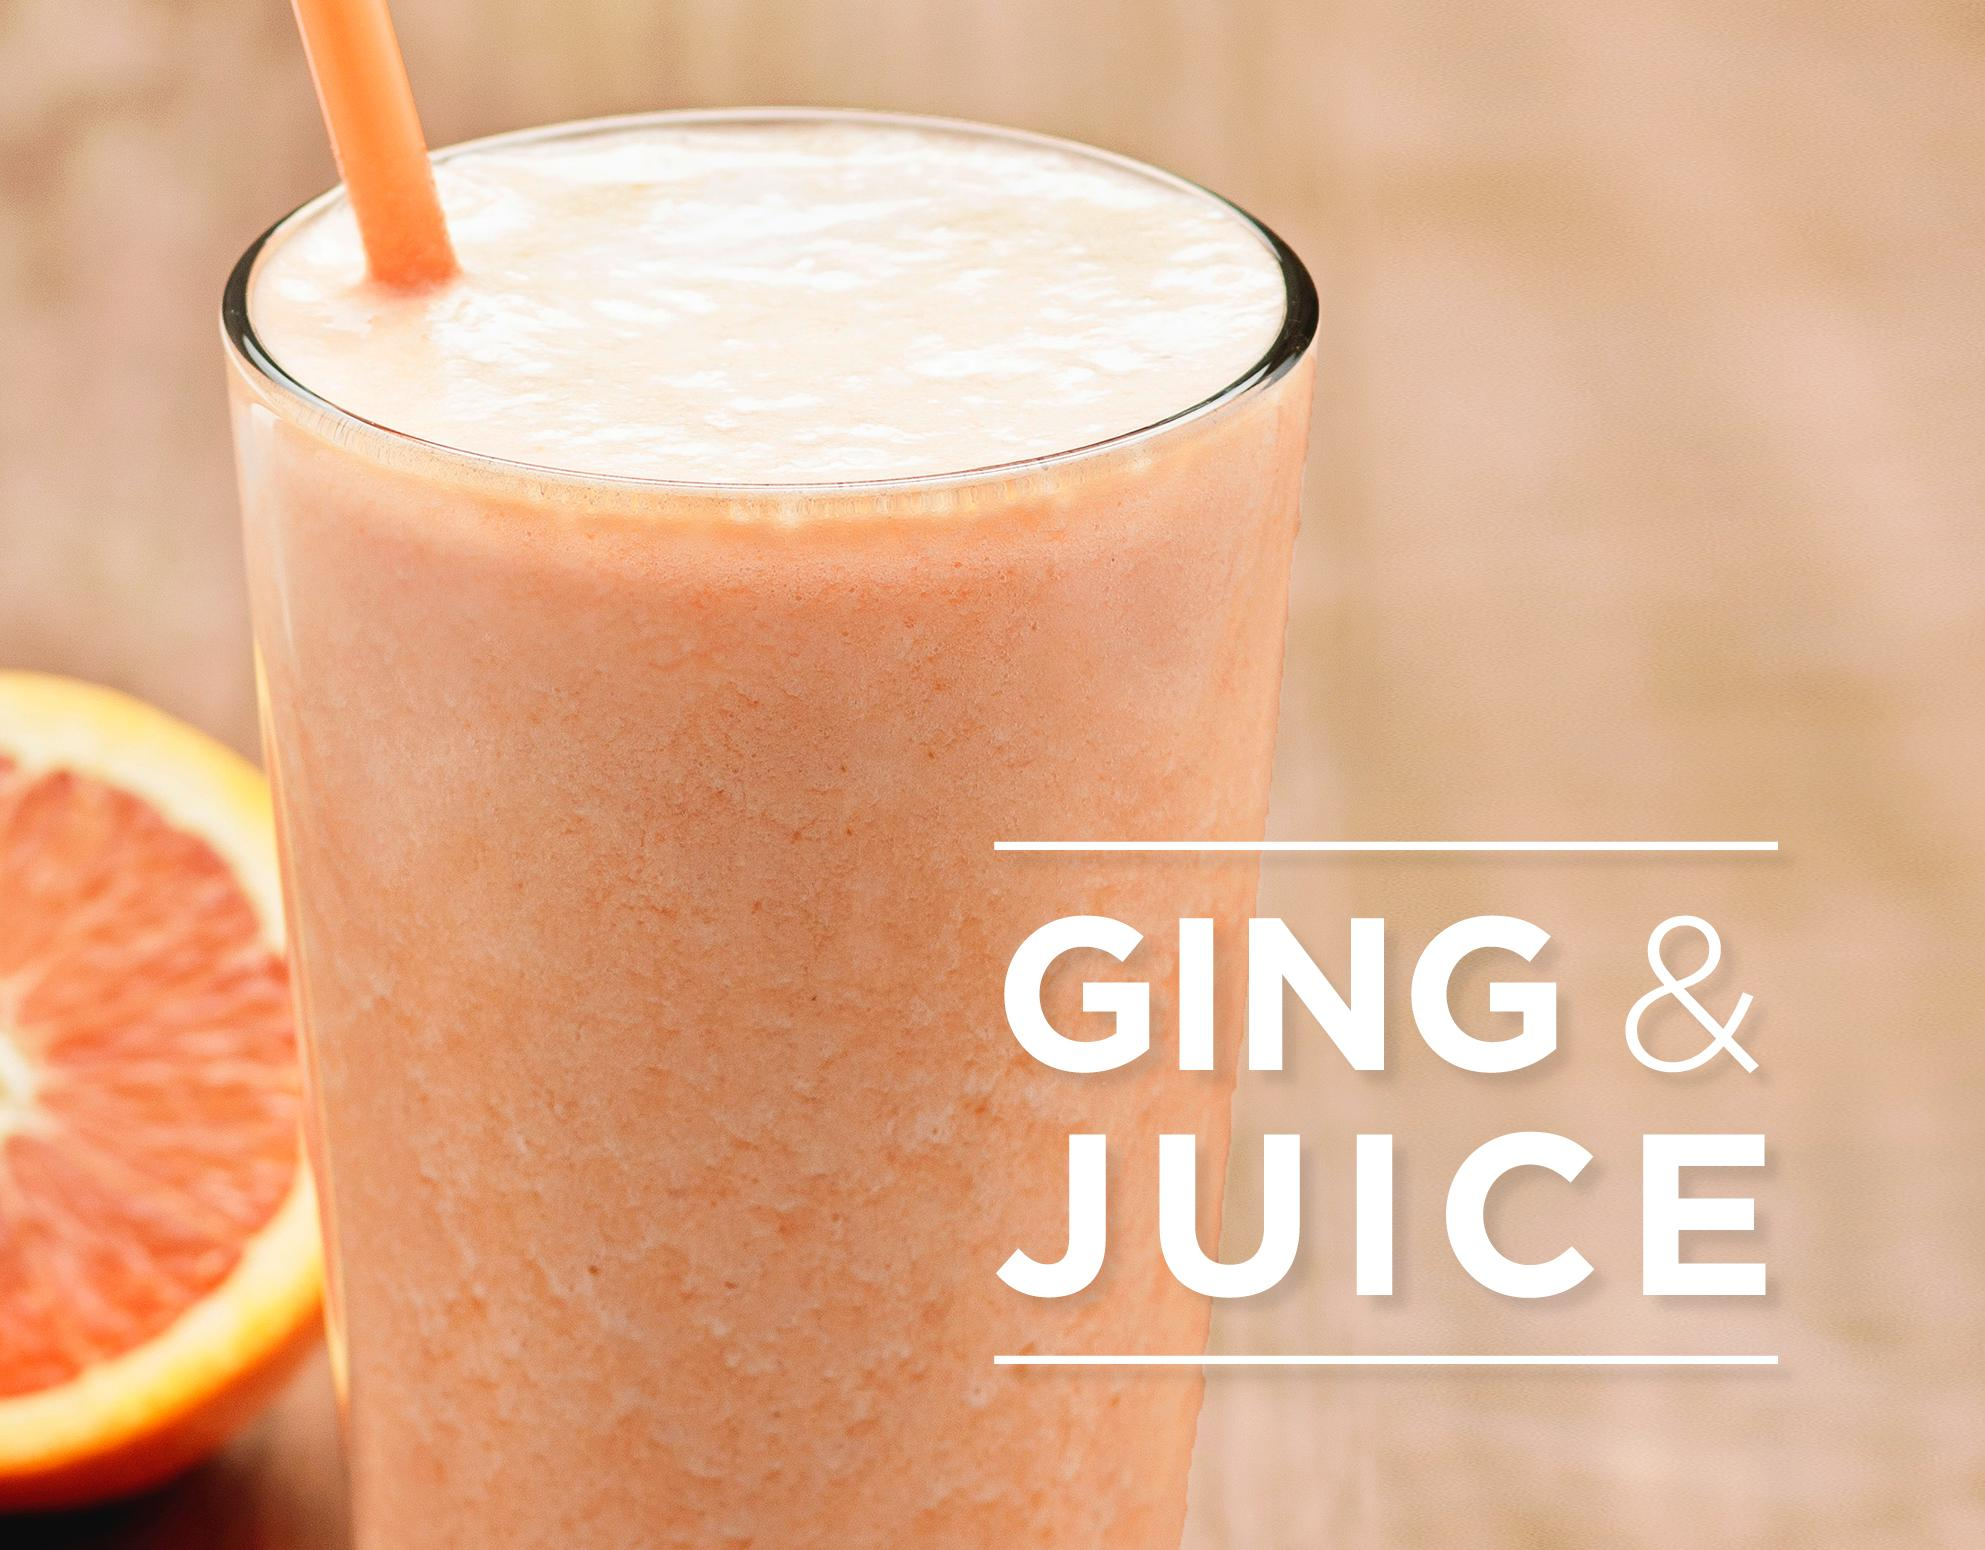 Ging and Juice